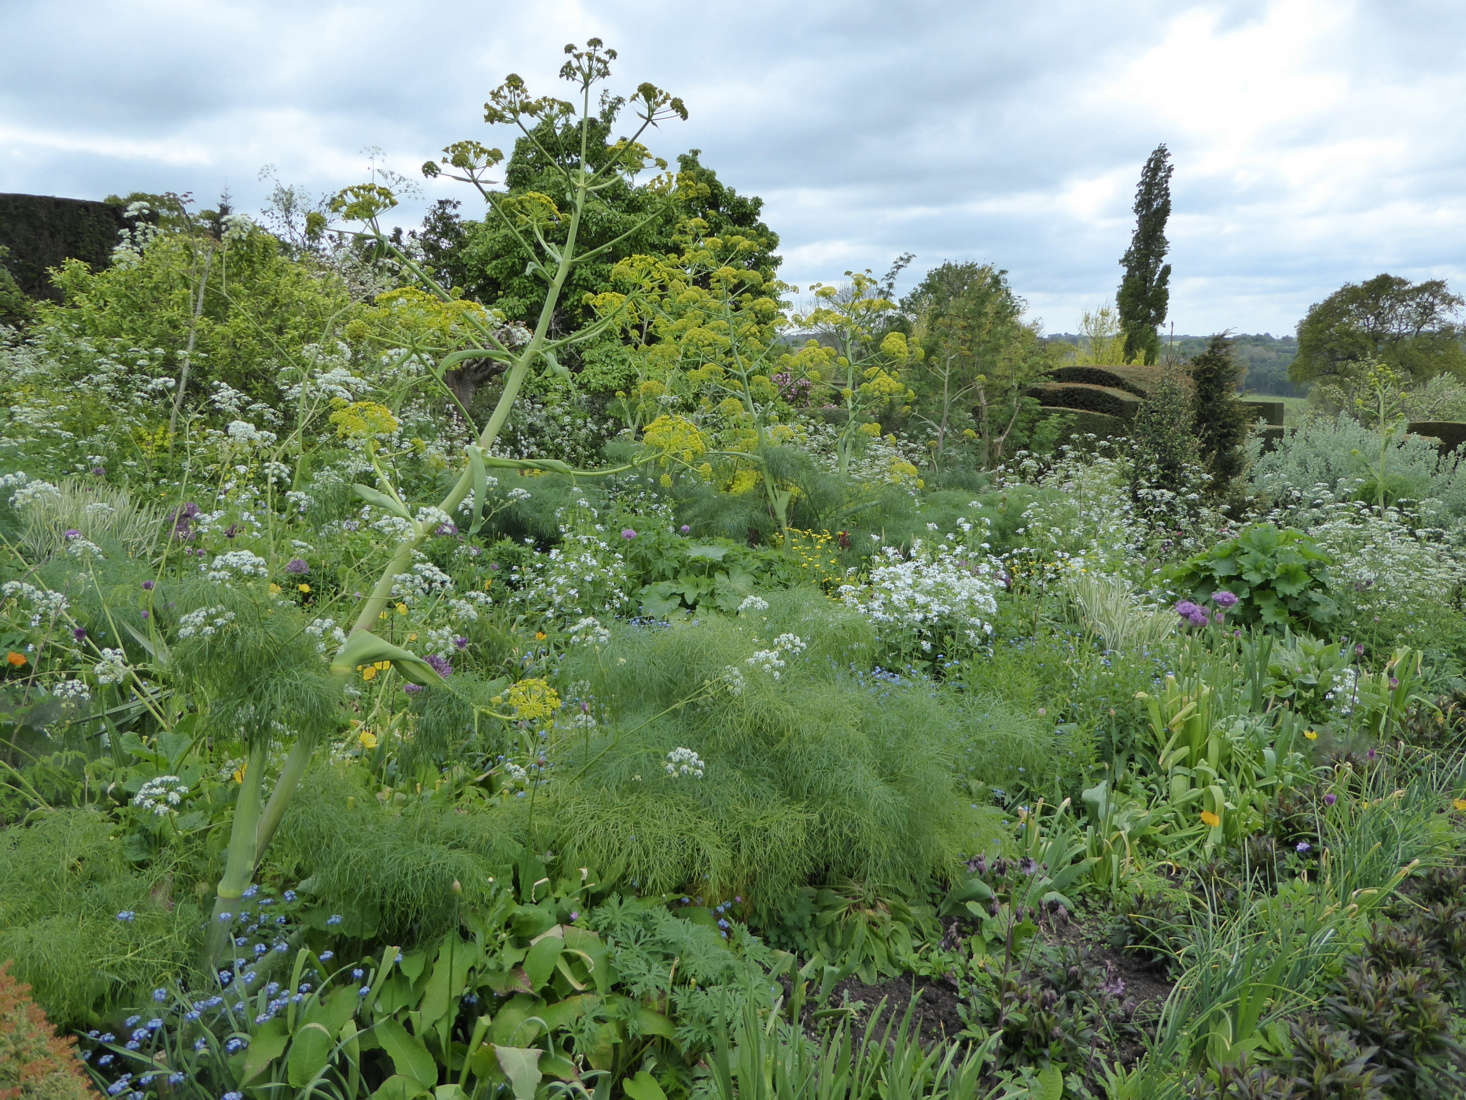 Cow parsley acts as a foil to the zingy lime green of euphorbia and dances around the towering spires of giant fennel.